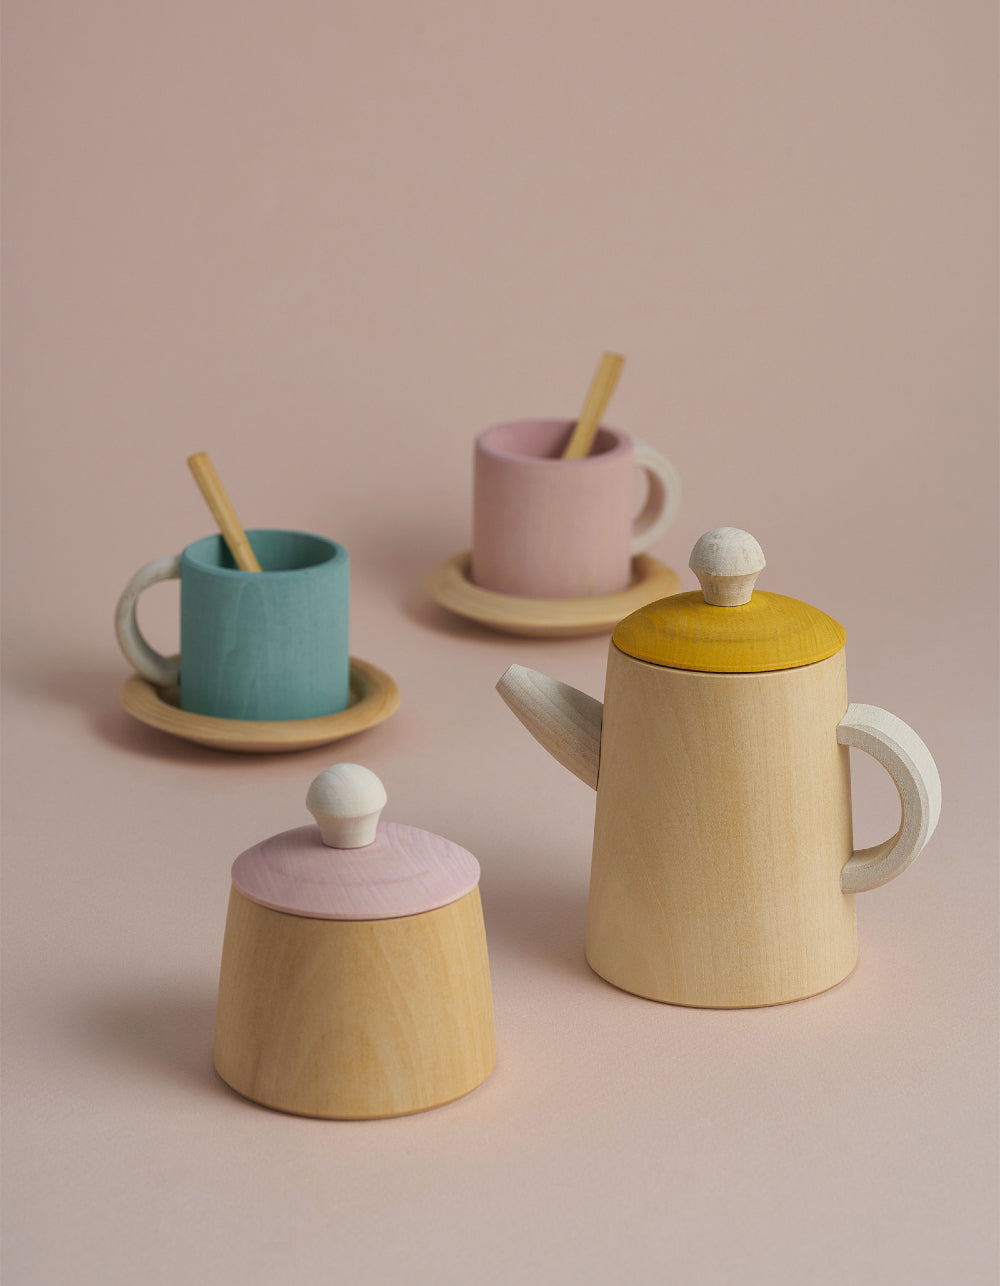 Raduga Grez Tea set pink and mustard